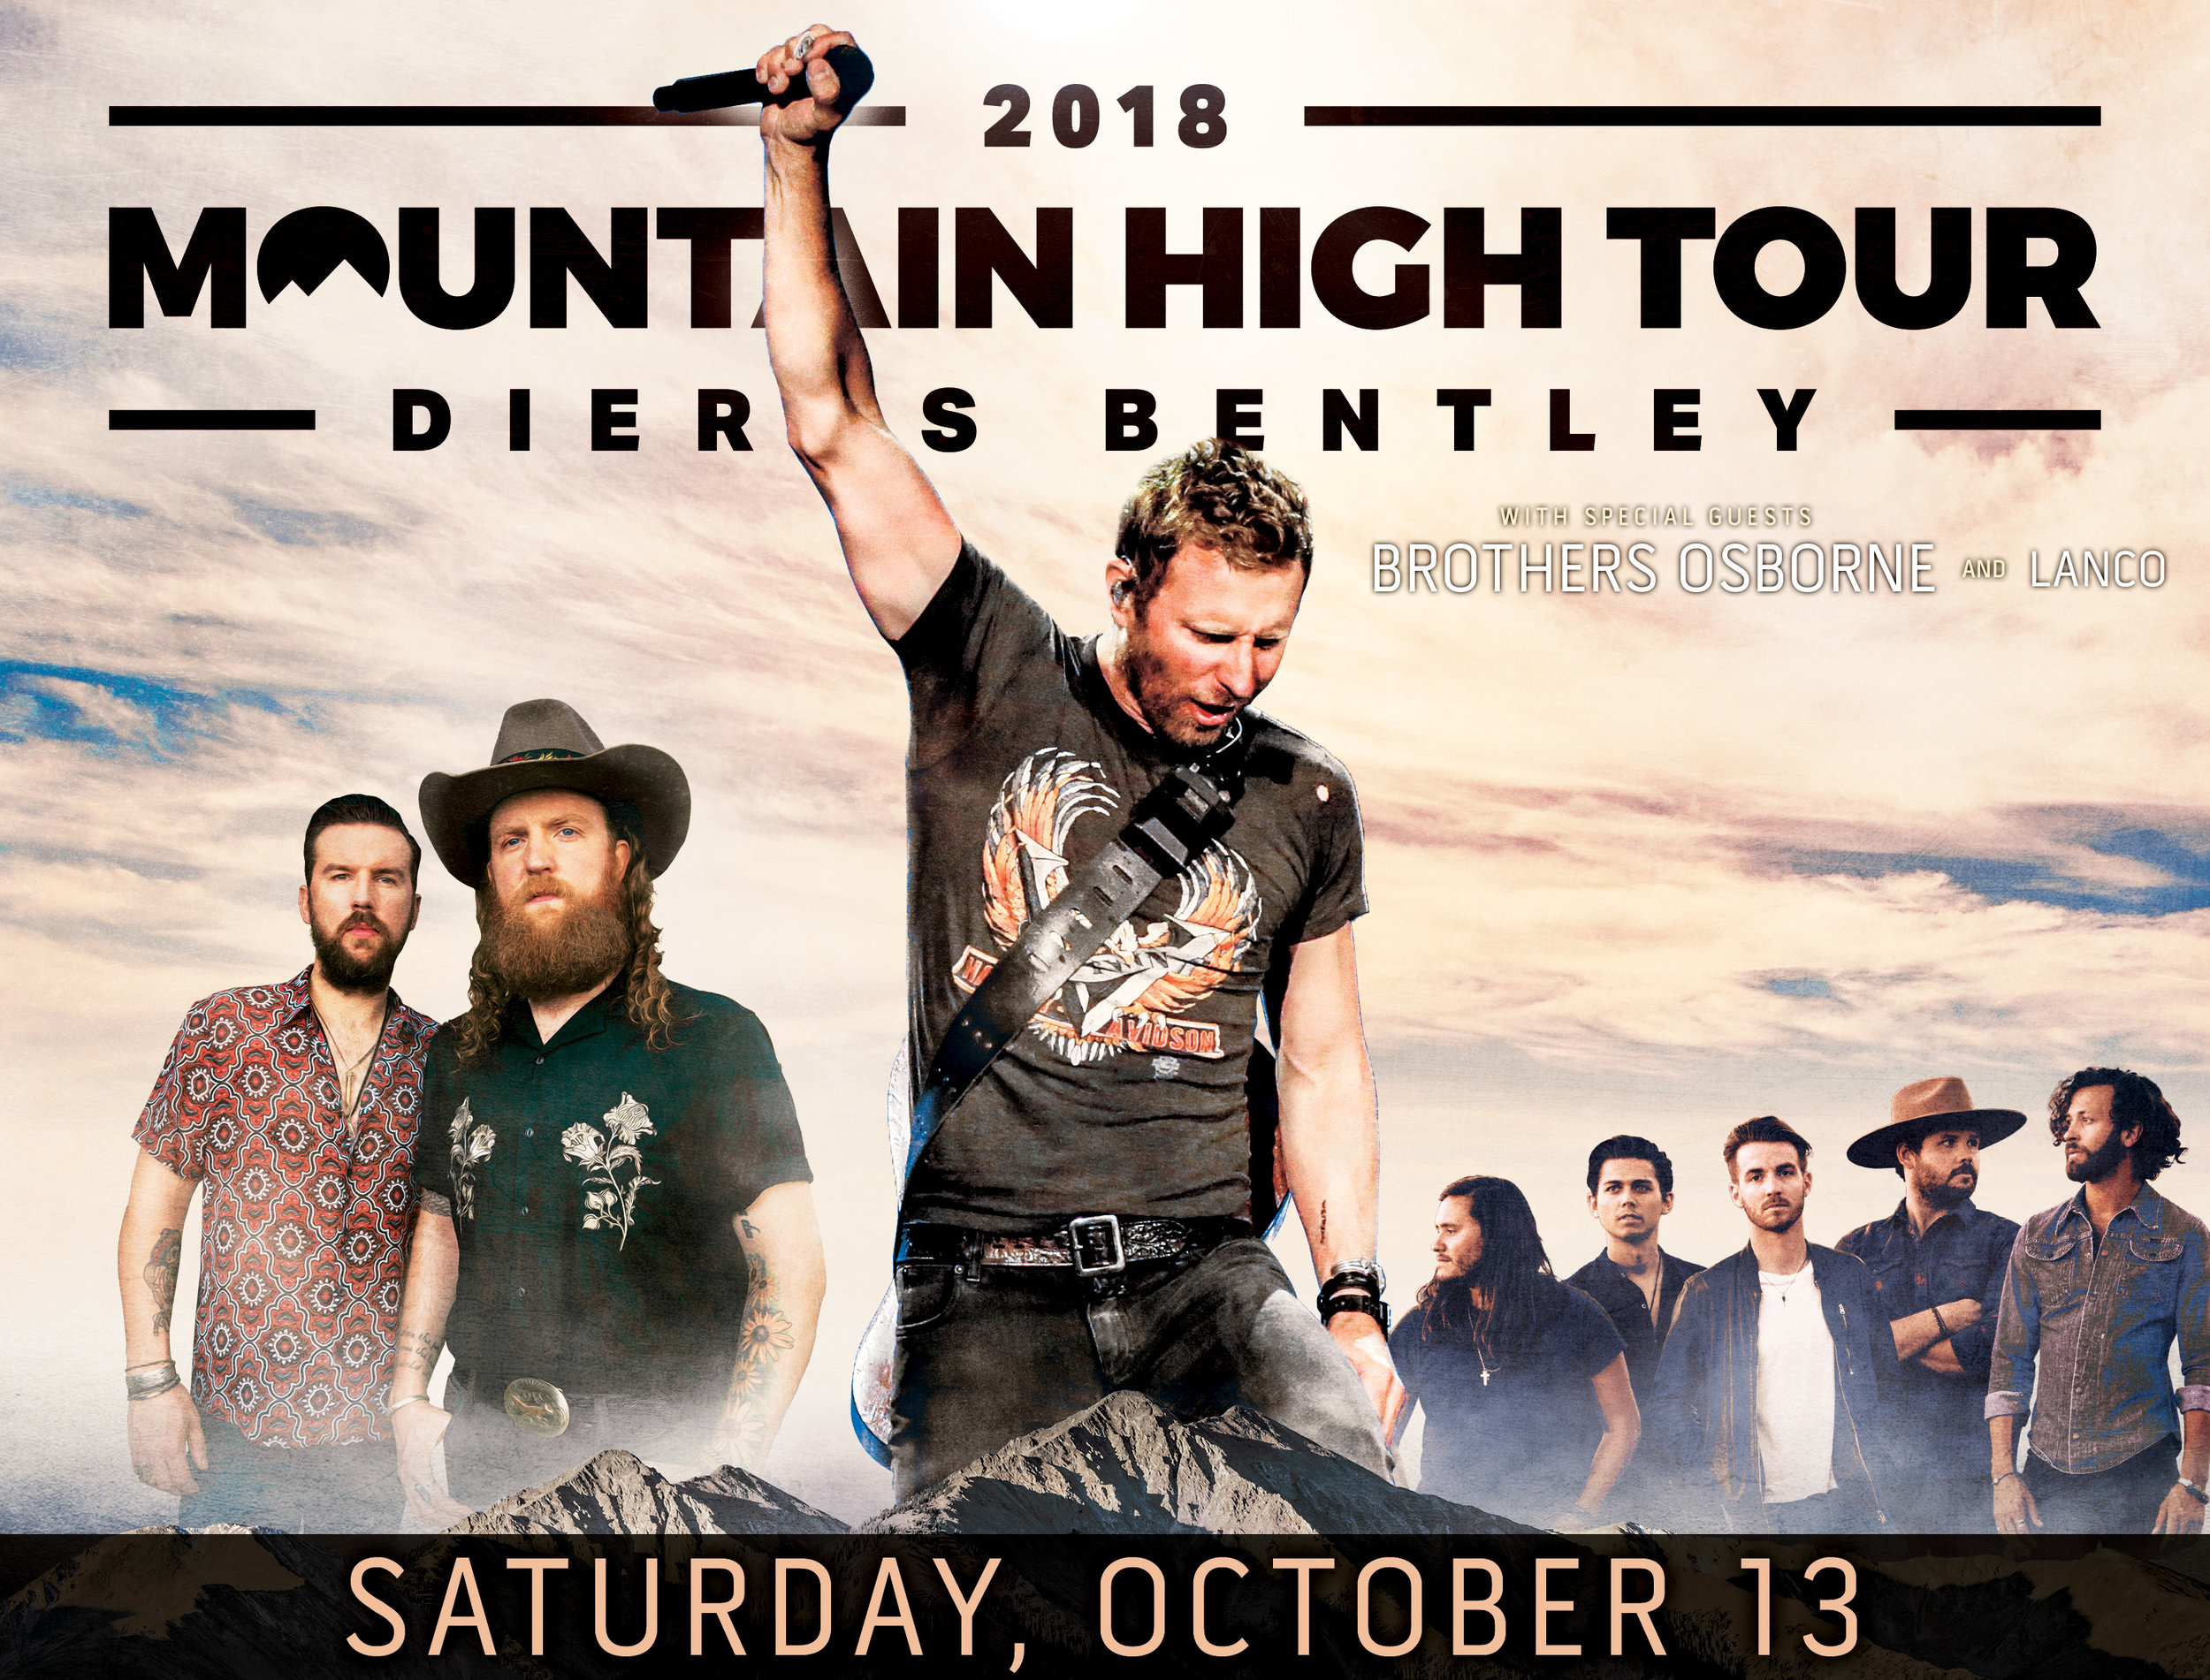 Dierks Bentley - w/ Brothers Osbourne & LANCOSaturday, October 13th | Doors: 5:30pm | Show: 7:00pm